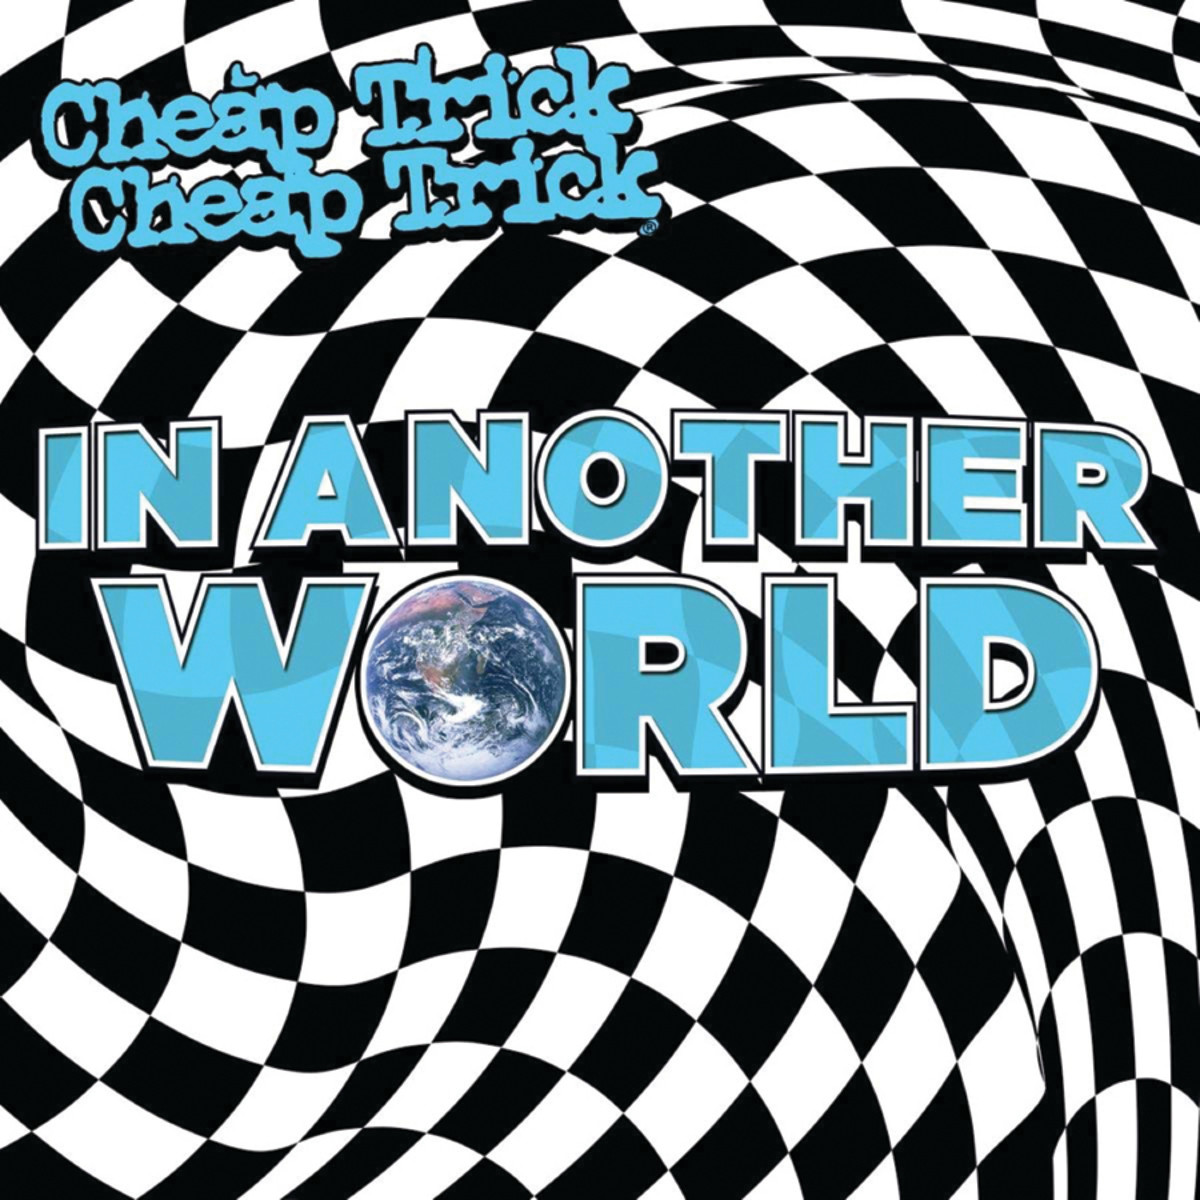 In Another World is also available in blue/white splatter colored vinyl.